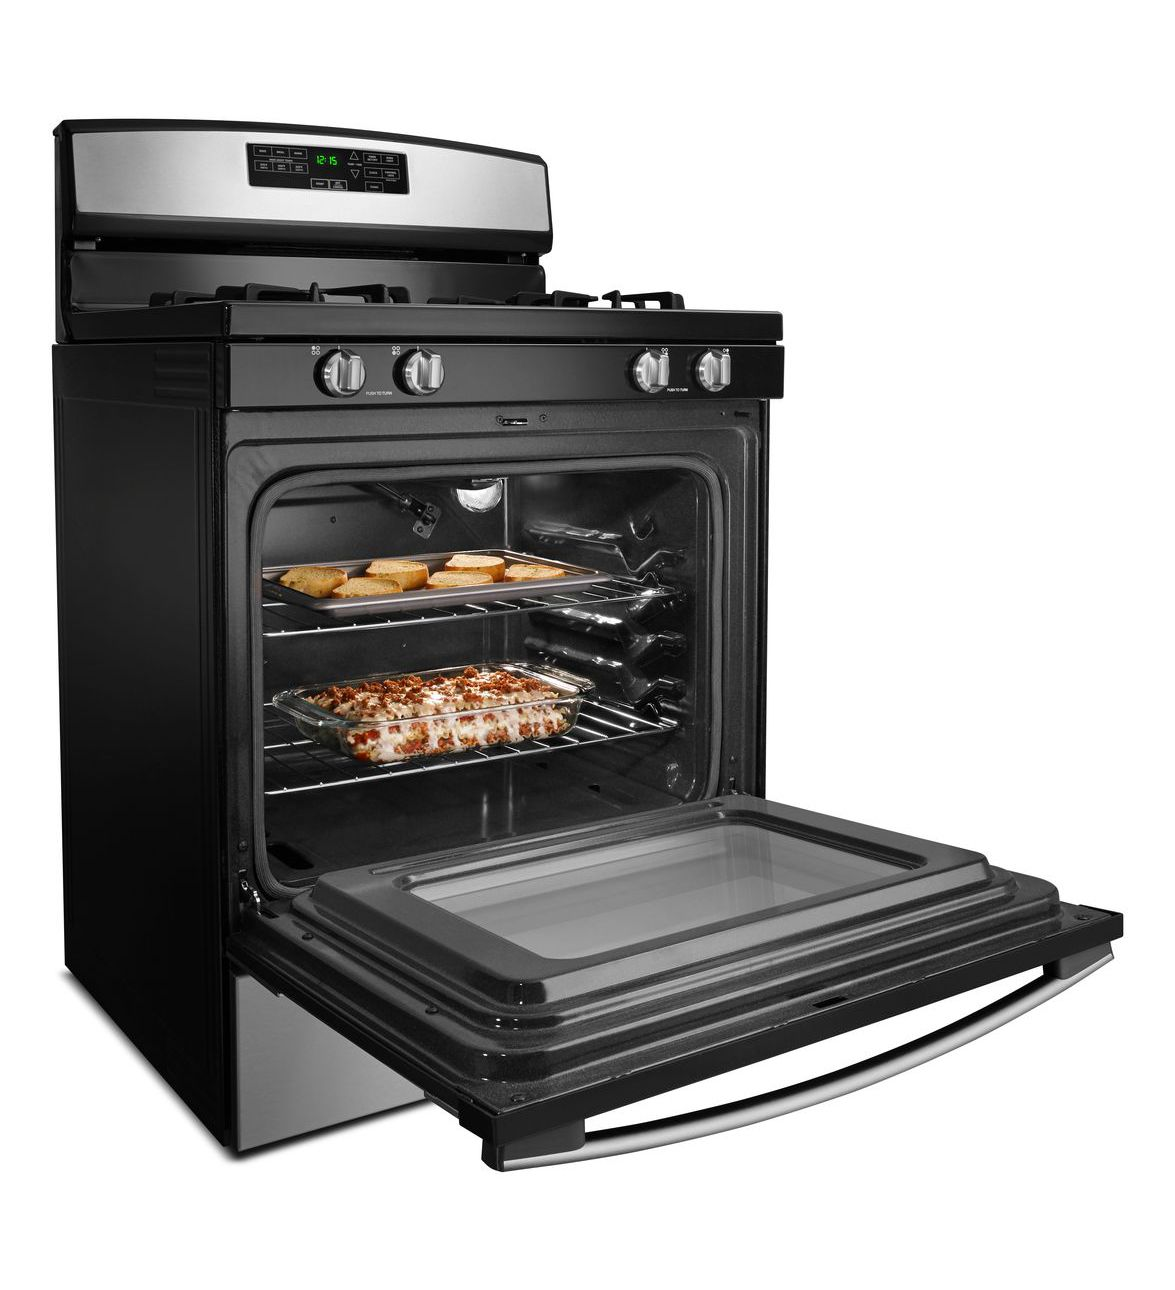 agr6603sfw 30 inch gas range with self clean option. Black Bedroom Furniture Sets. Home Design Ideas